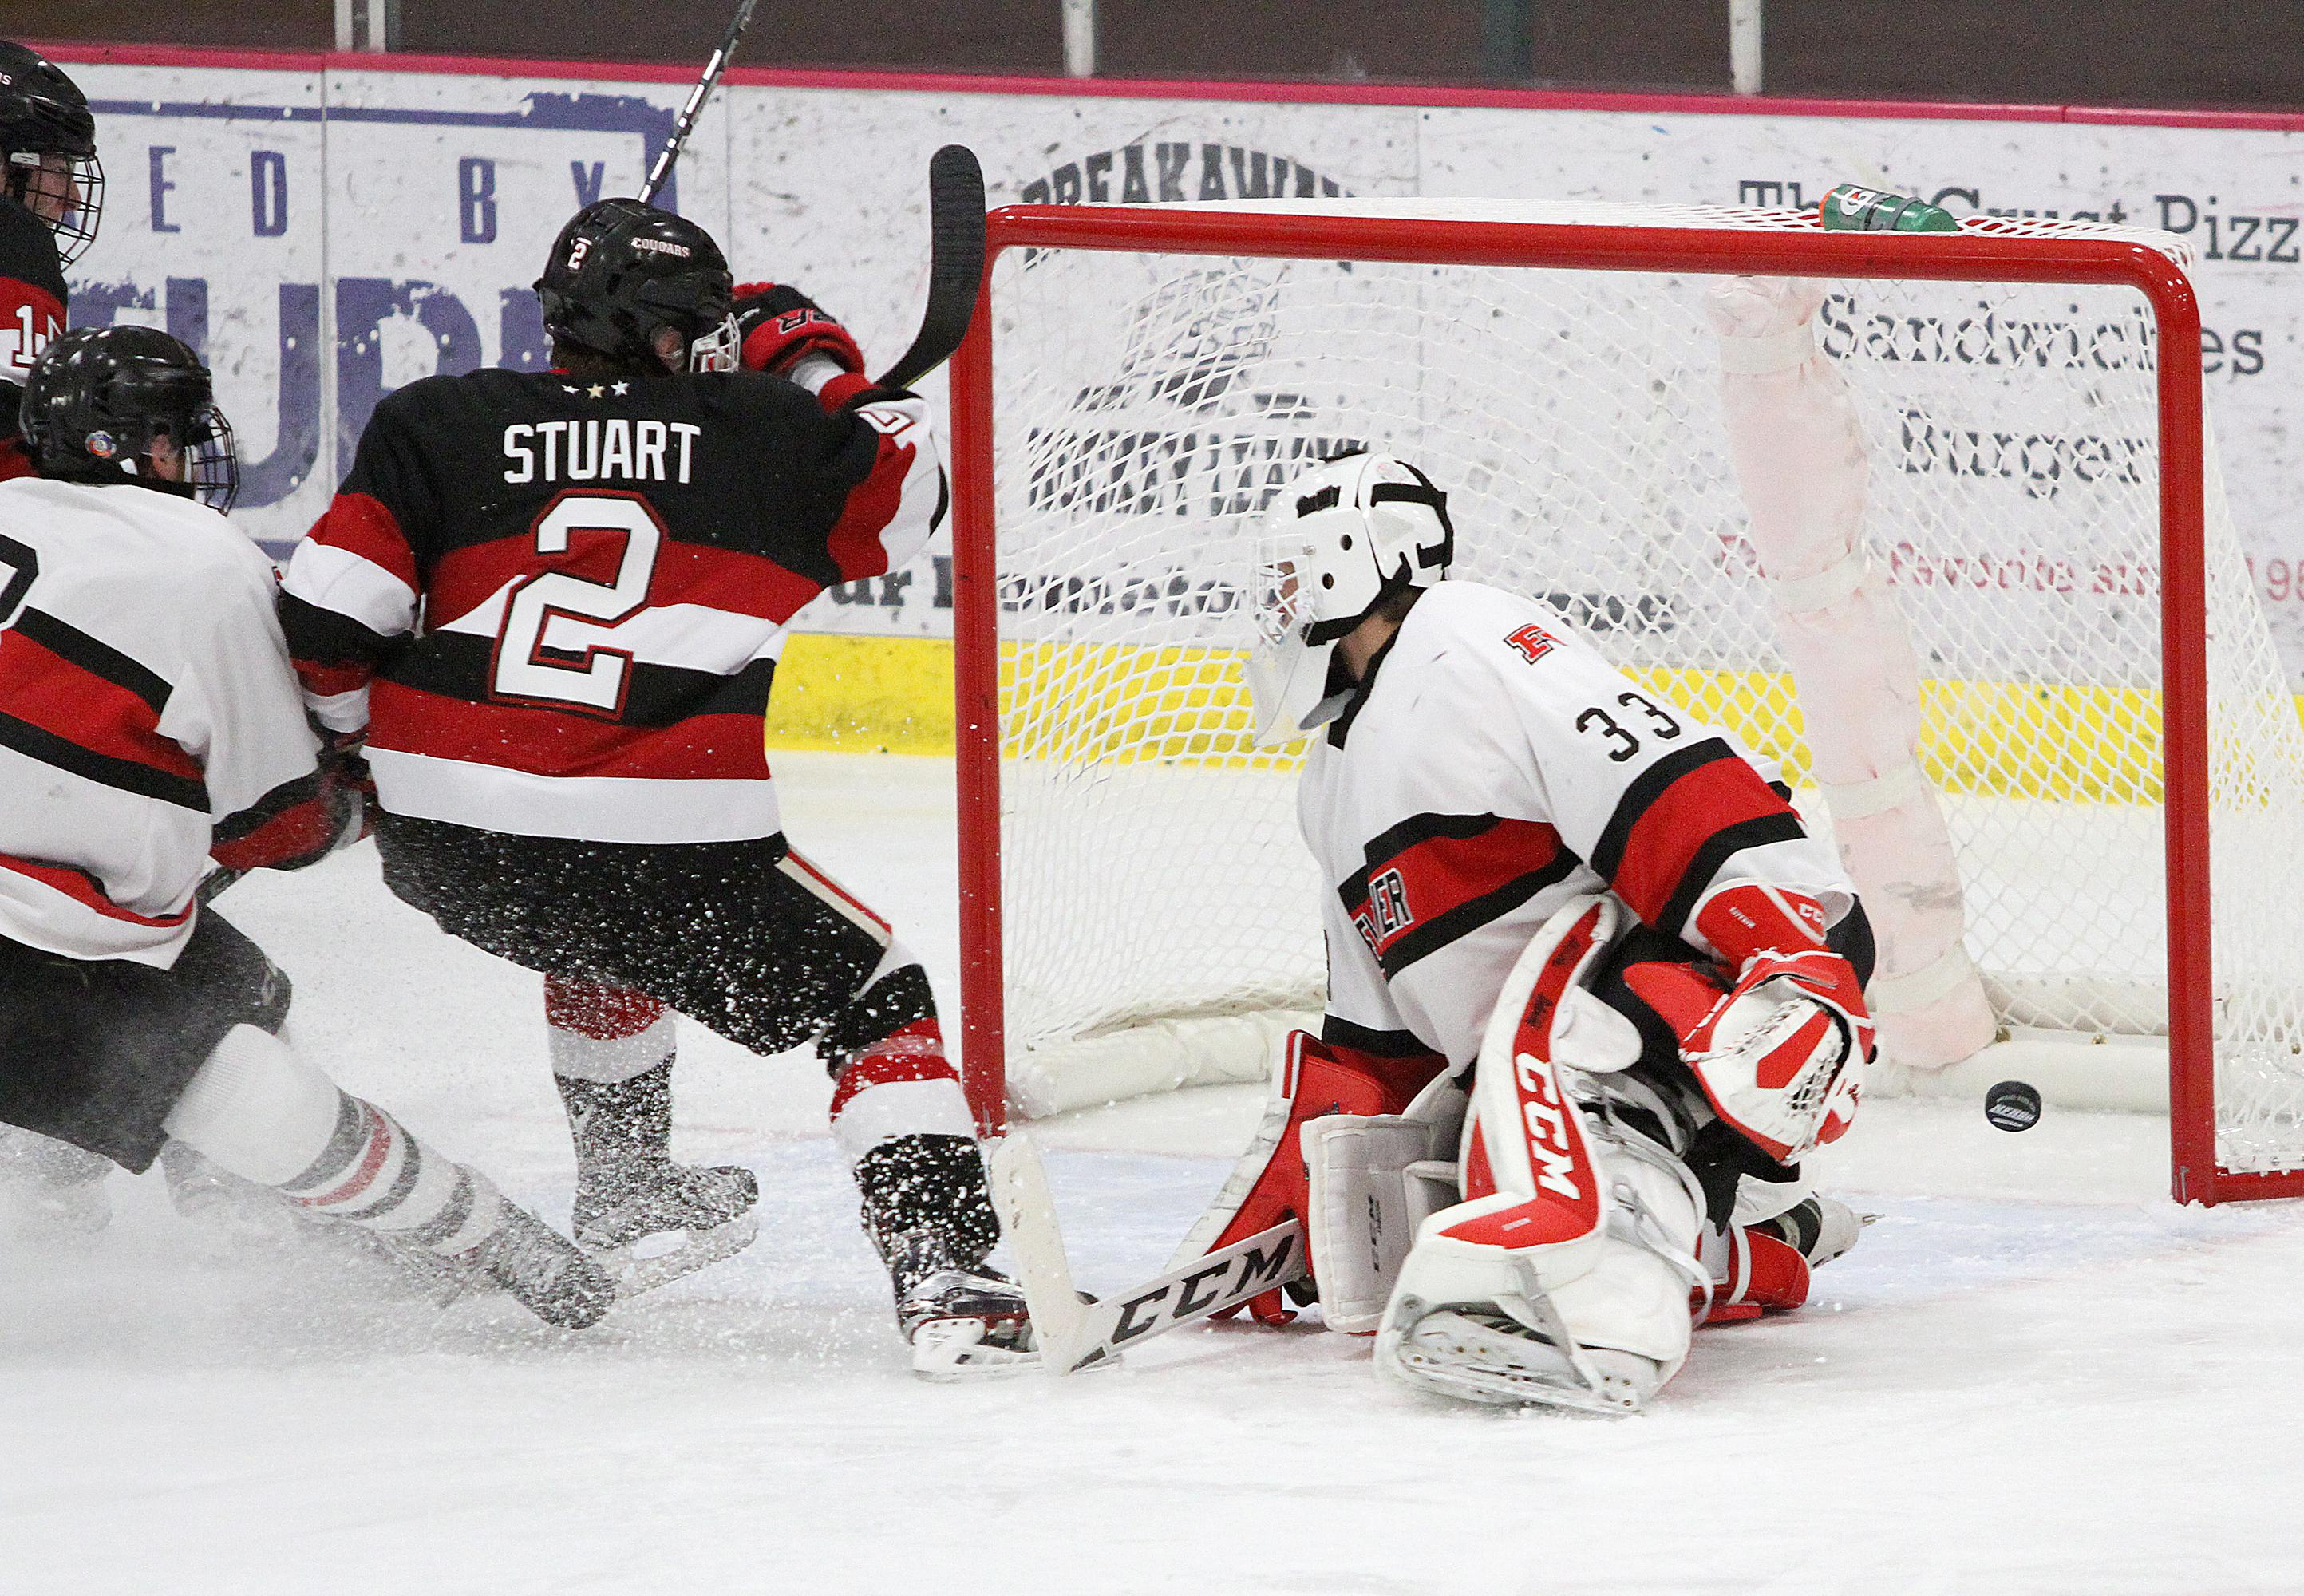 MN H.S.: Centennial Rides Early Momentum To Victory Over Elk River